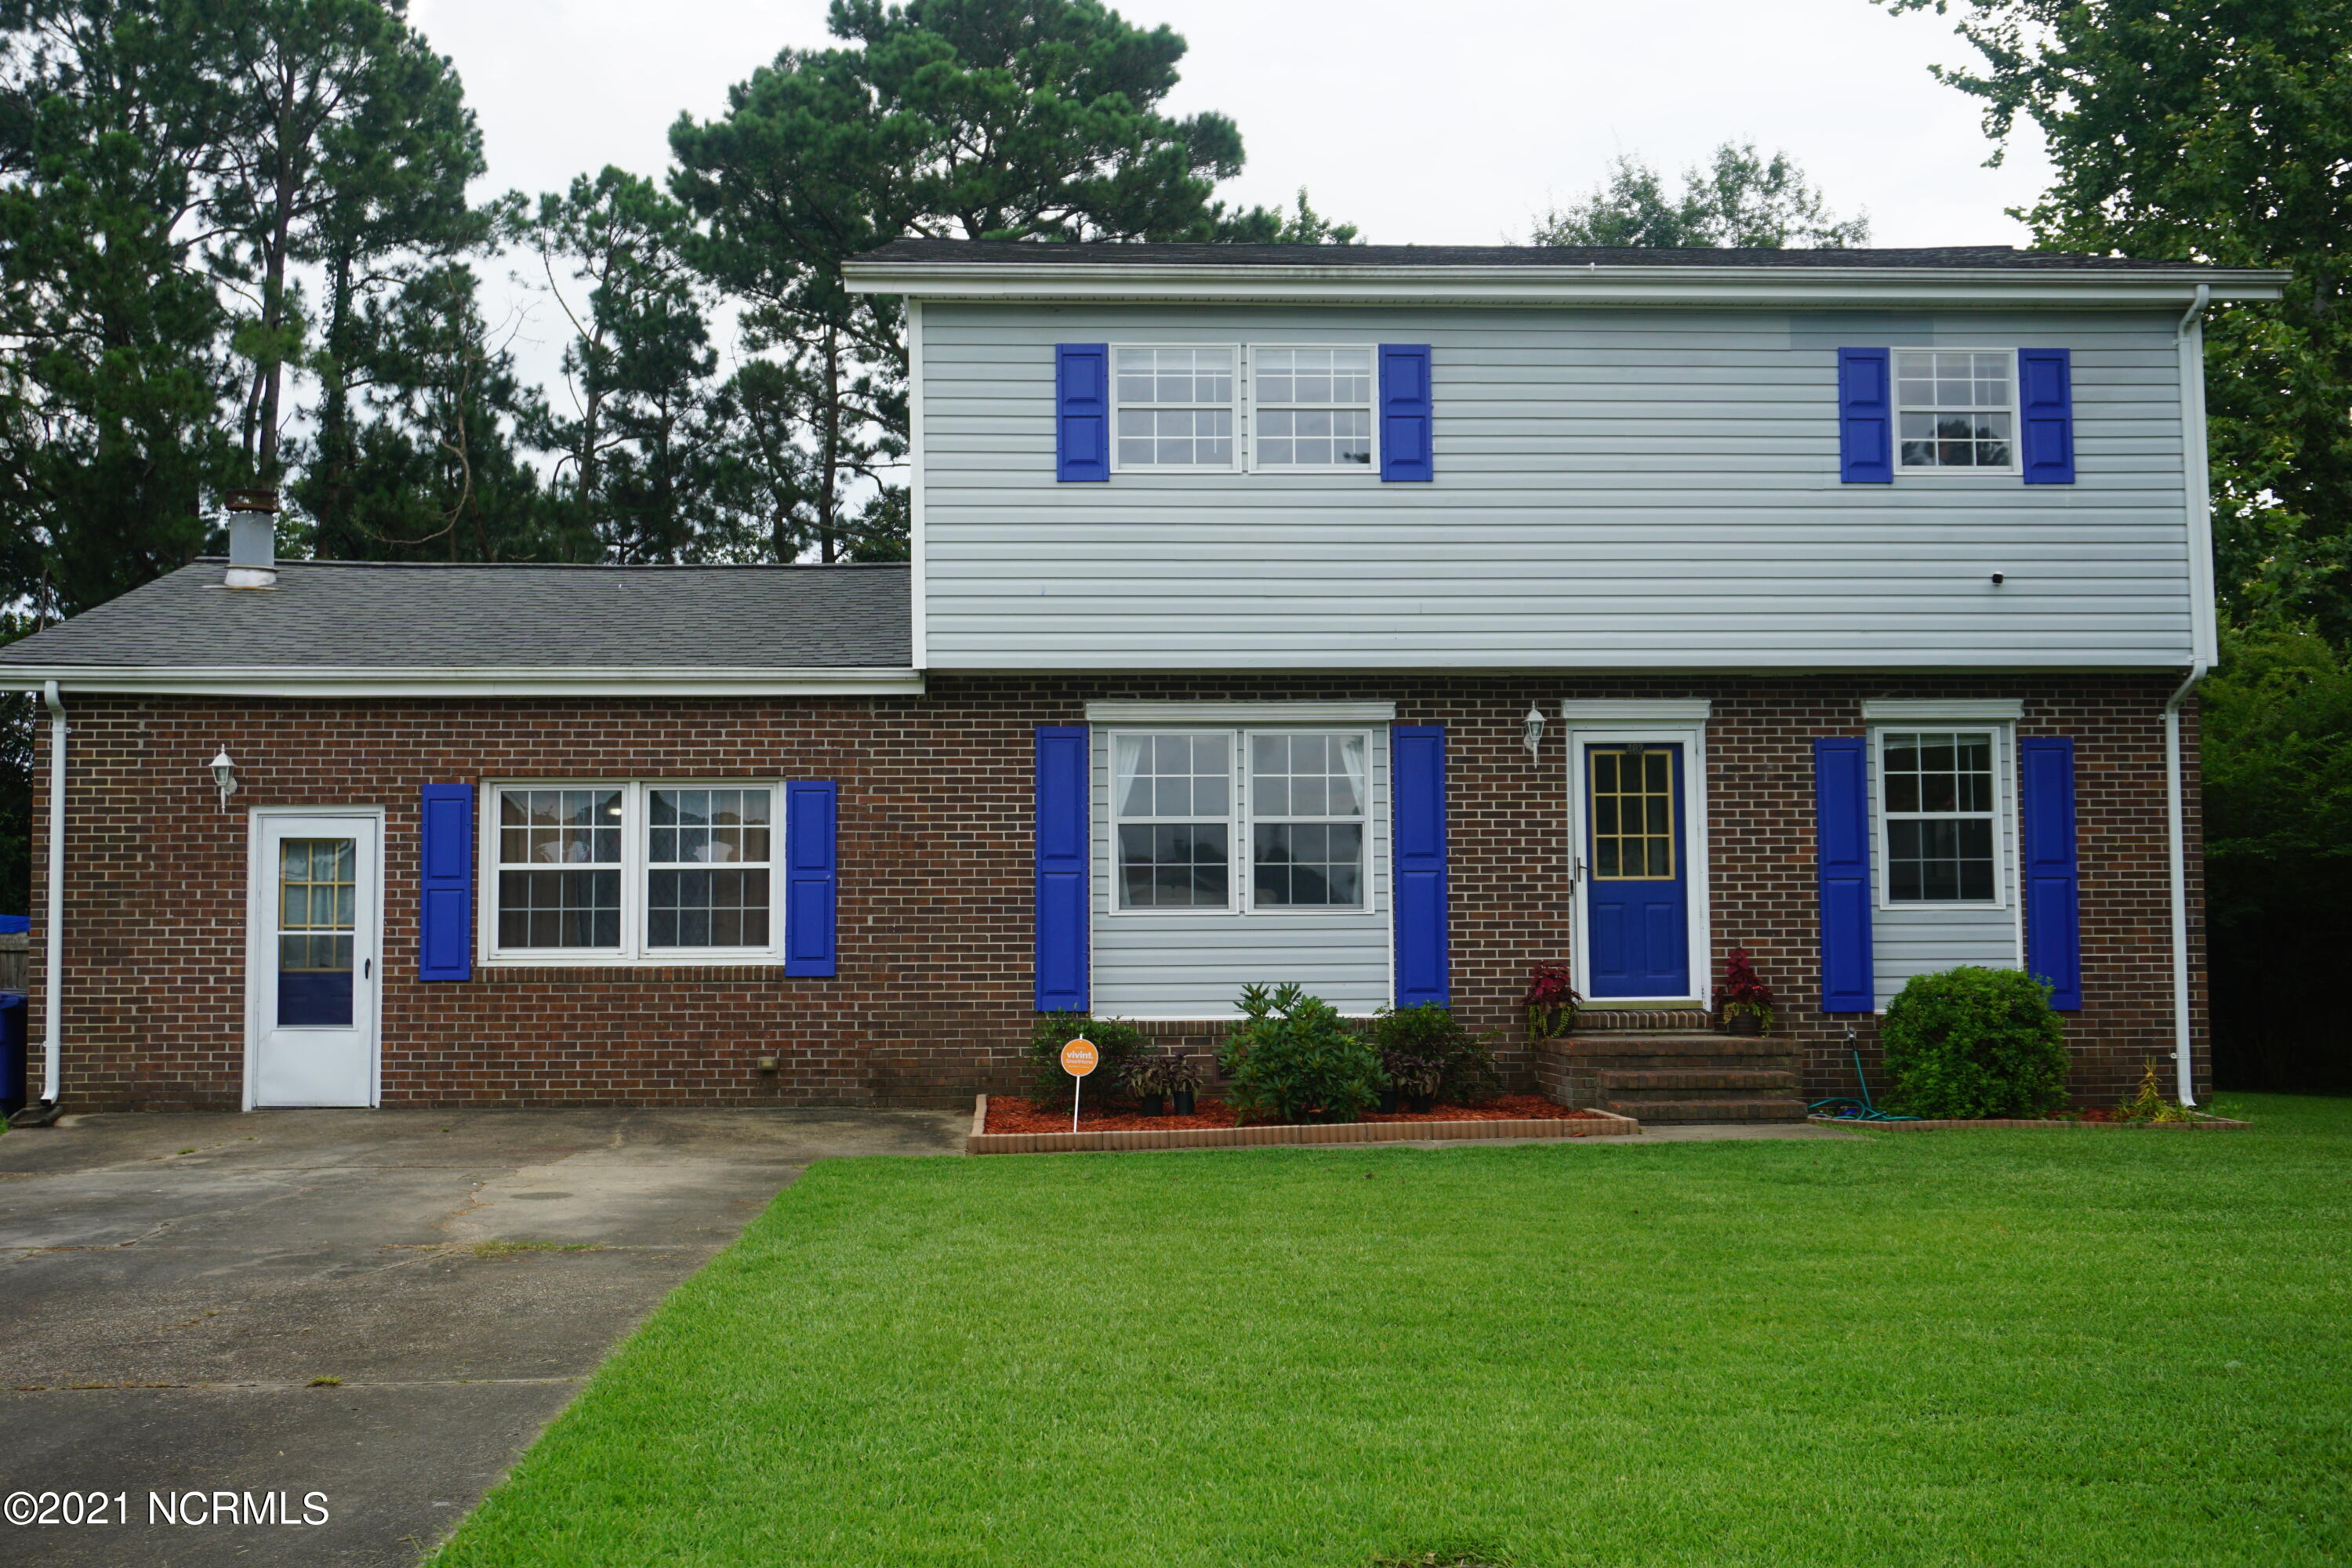 Wonderful home tucked in the quiet Brynn Marr subdivision. Conveniently located less than a mile from Camp Lejeune's Main Gate and a short drive to Jacksonville's mall, shops and restaurants. This spacious 3 bedroom, 2.5 bathroom home includes a HUGE sitting area off the Master Bedroom that can also be used as a nursery or an office.  Venture downstairs and you'll also find a large family space with a beautiful stone fire place and accent beams in the ceiling and a large fenced in backyard. This home boasts over 2200 heated sq. feet and is freshly painted with updates throughout including LifeProof vinyl flooring on the main floor and Vivint Security System. This well loved home is ready for it's new owners! Schedule your showing today!